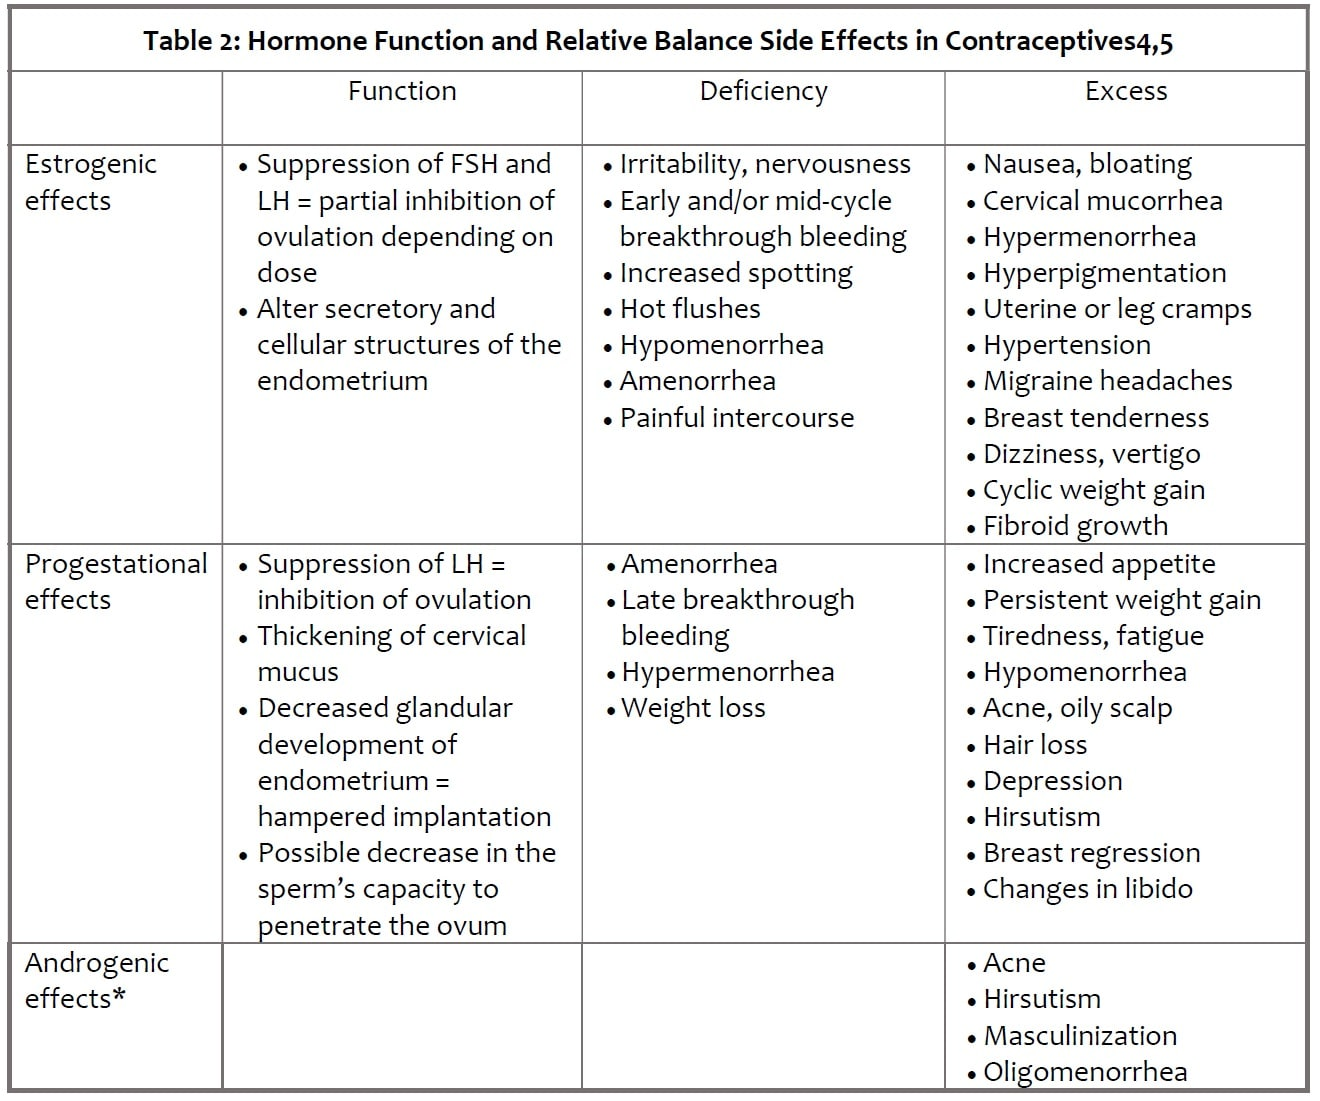 Table 2 - Hormone Function and Relative Balance Side Effects in Contraceptives4